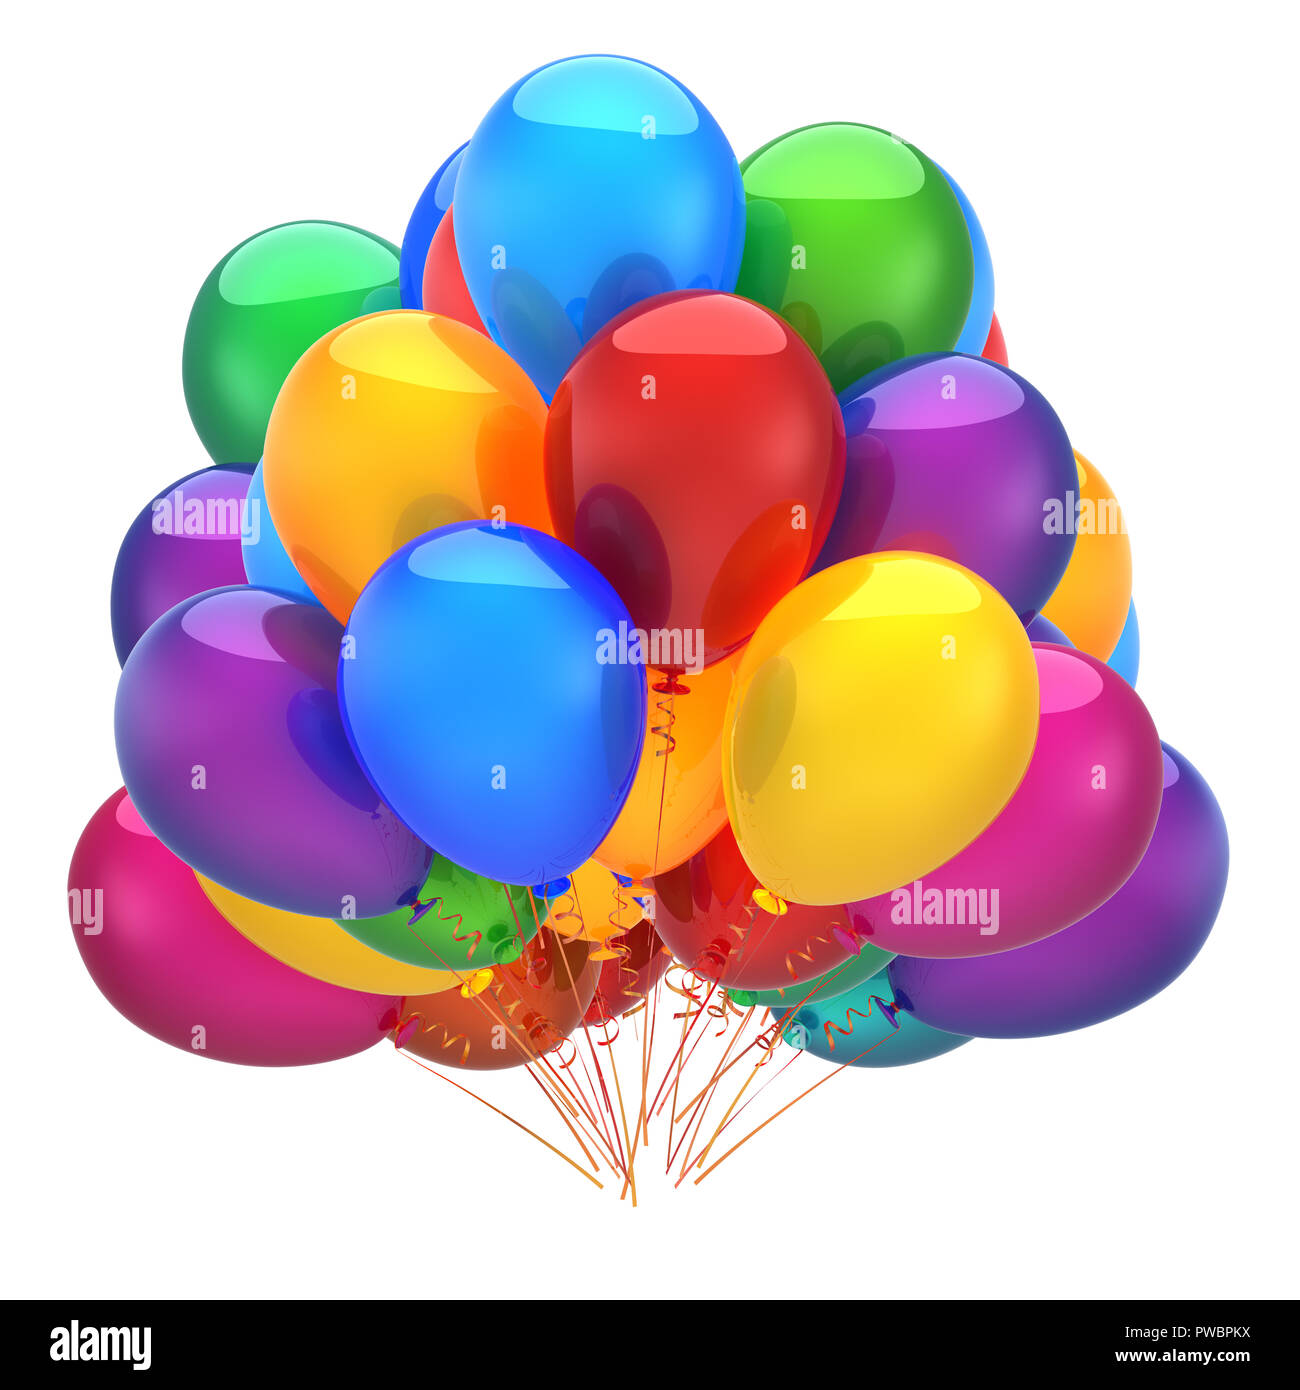 Bunch Of Party Helium Balloons Colorful Happy Birthday Decoration Multicolor Shiny Holiday Carnival Anniversary